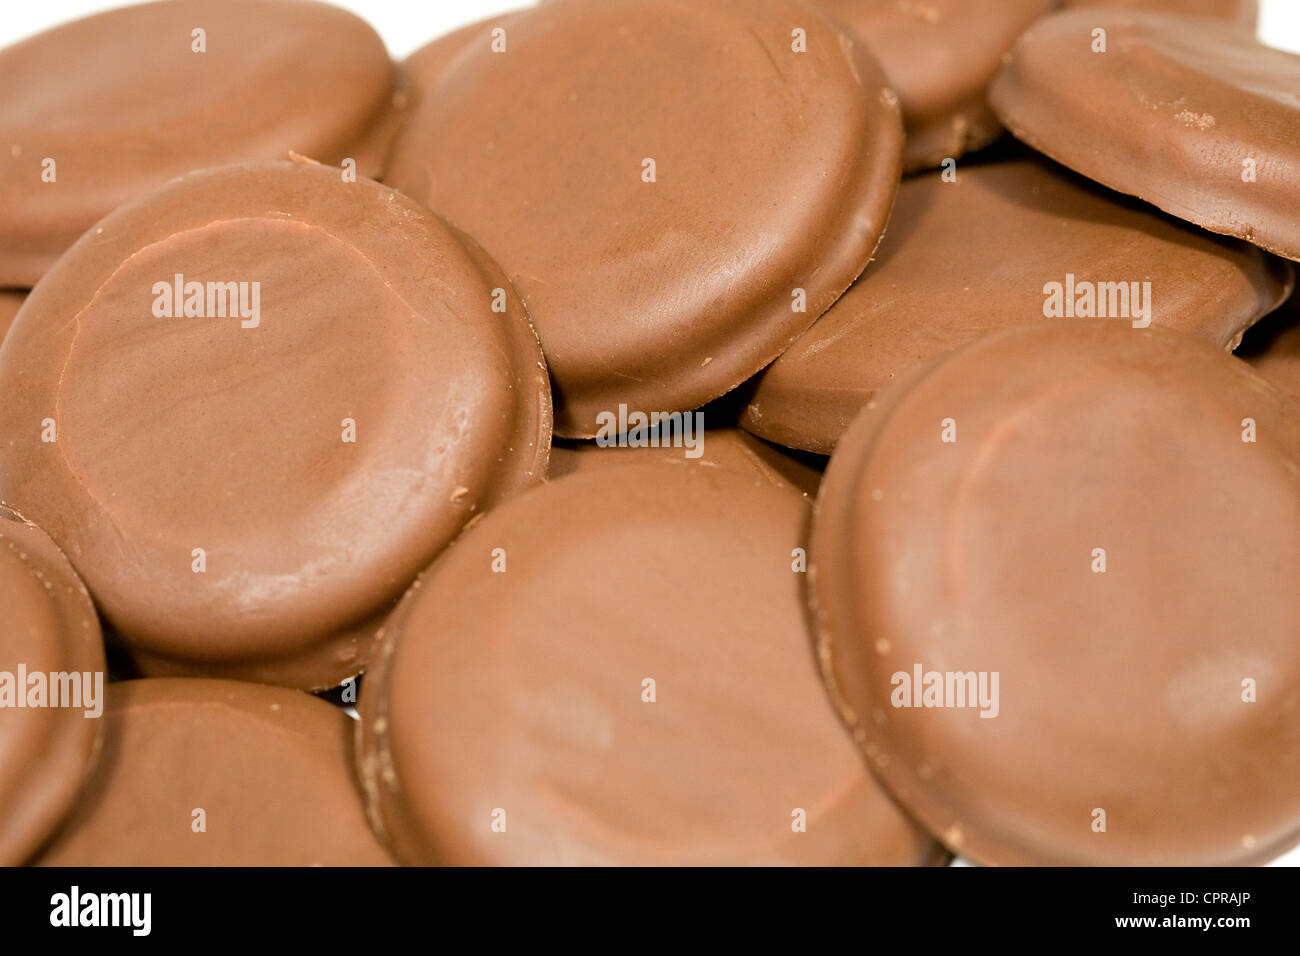 Tagalongs Girl Scout cookies.  - Stock Image